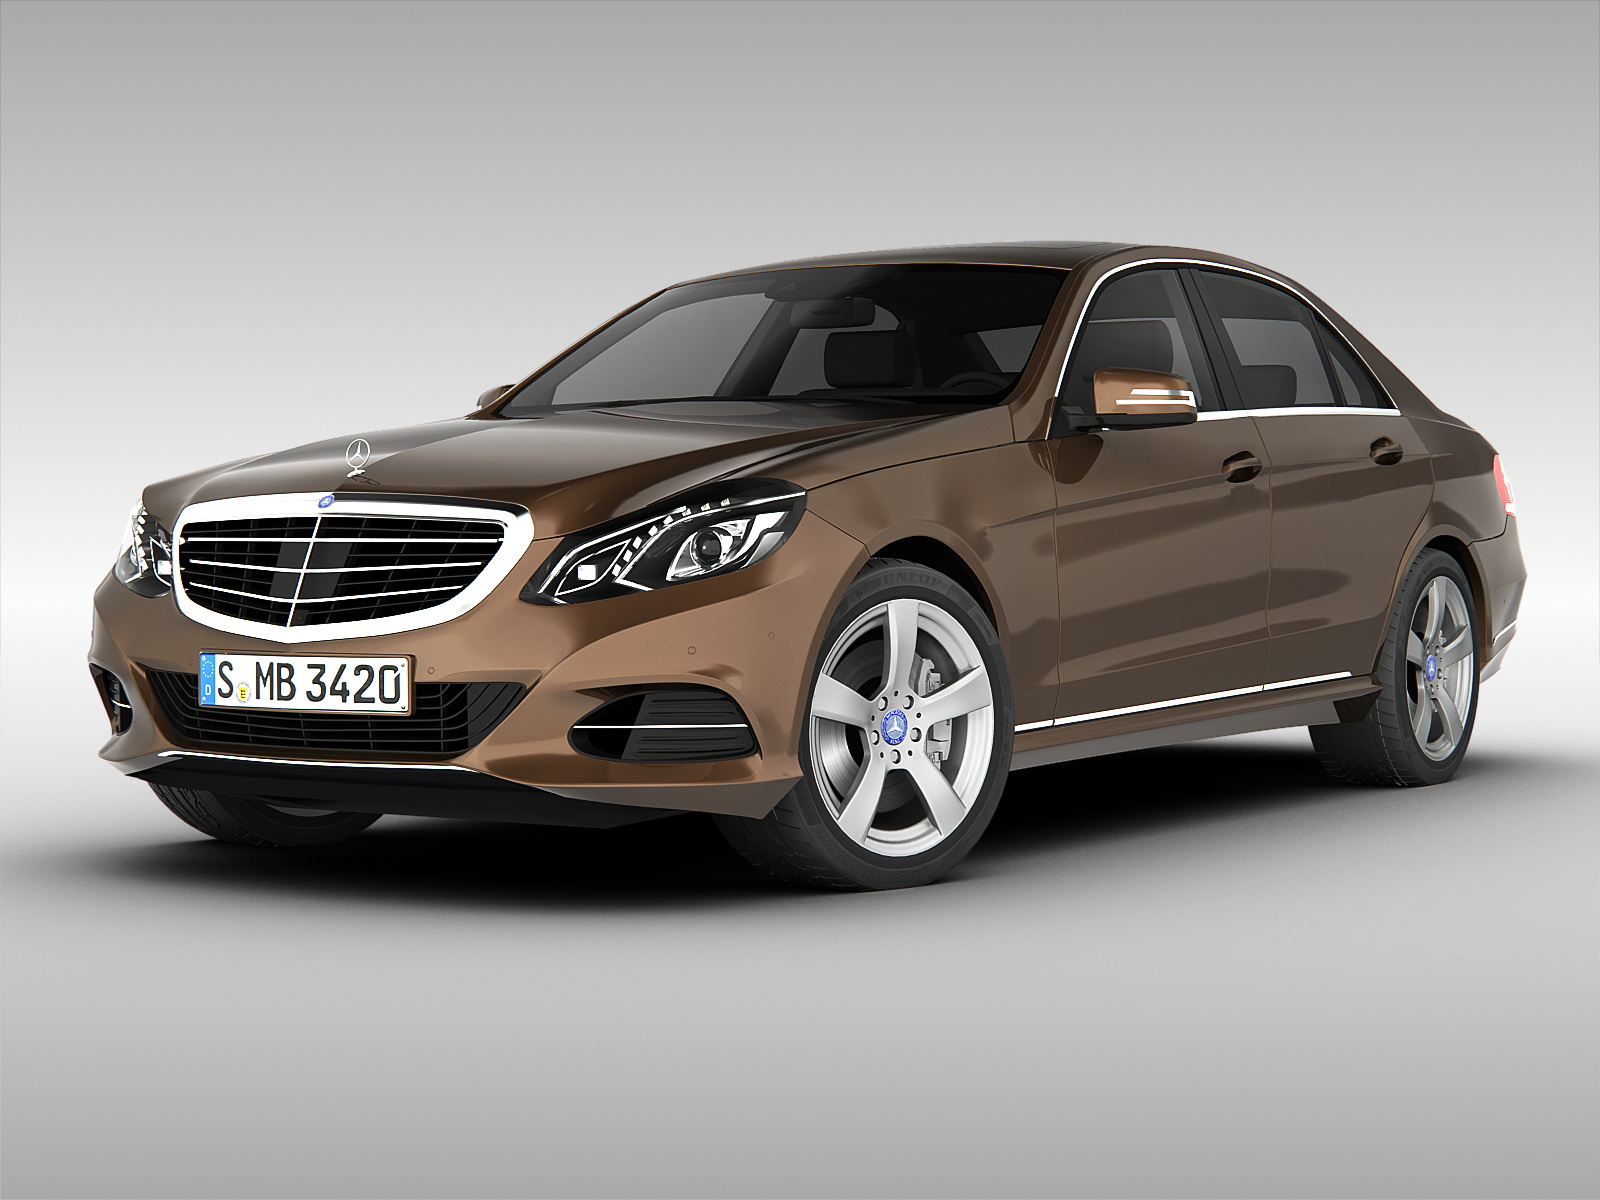 Cool car wallpapers mercedes benz e class 2014 for Mercedes benz 2014